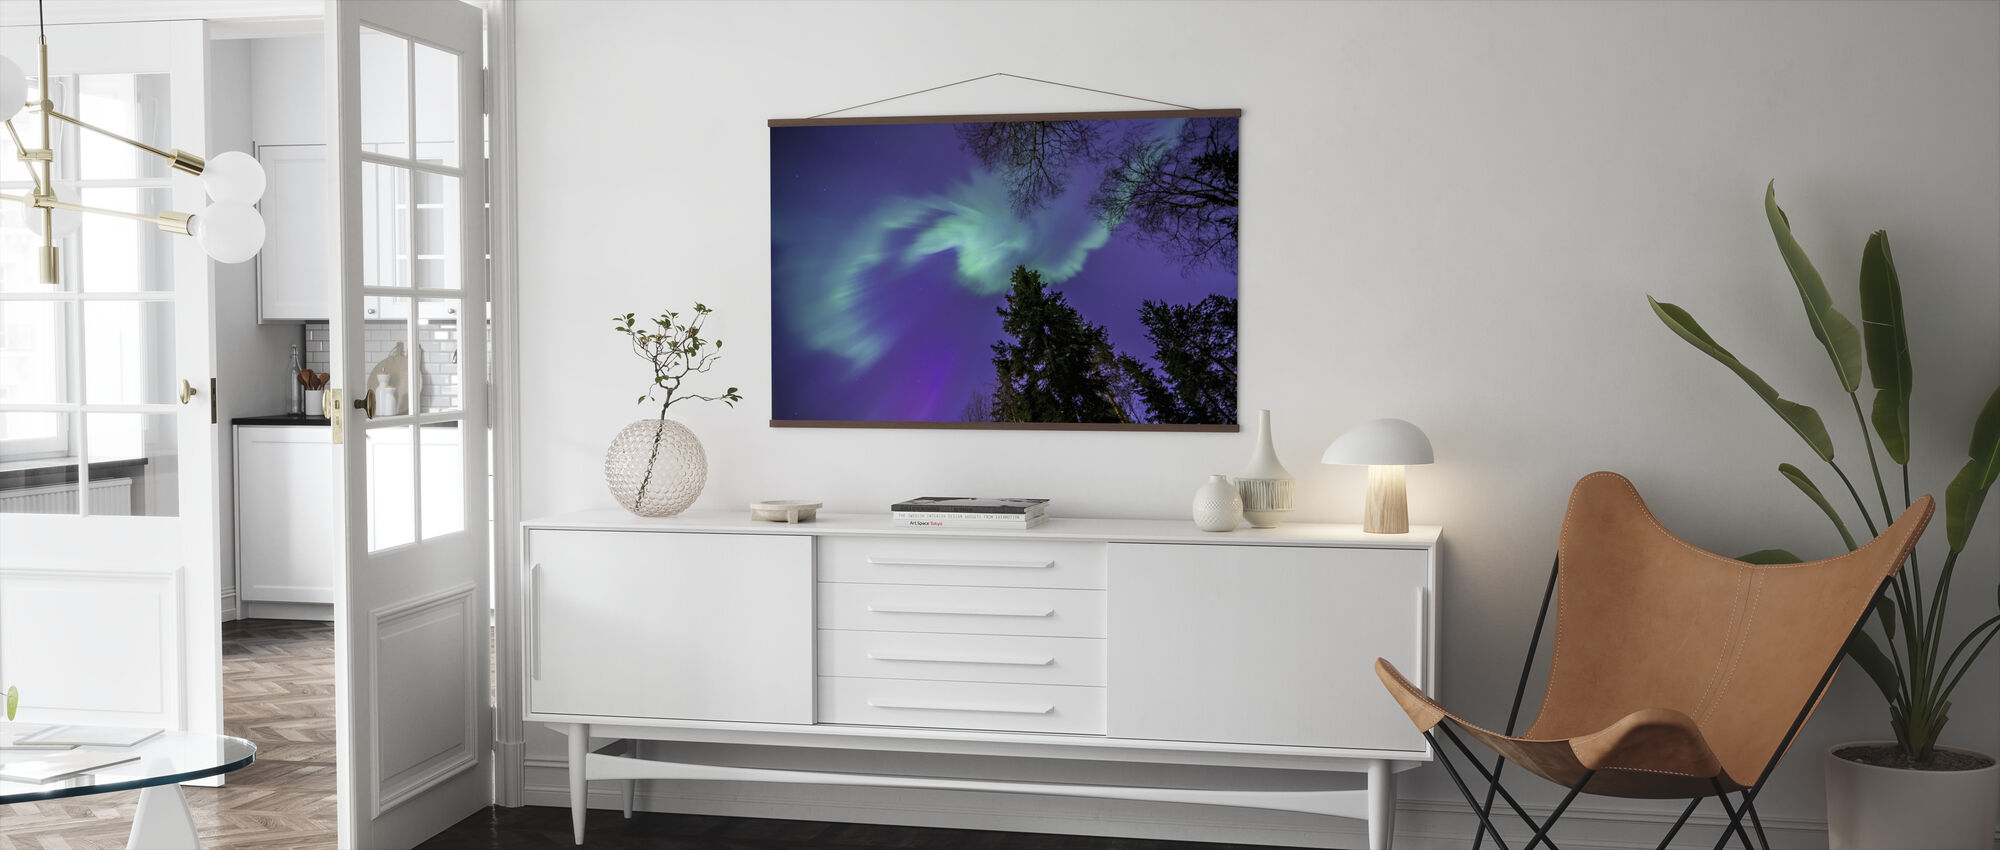 Northern Light - Purple Sky - Poster - Living Room